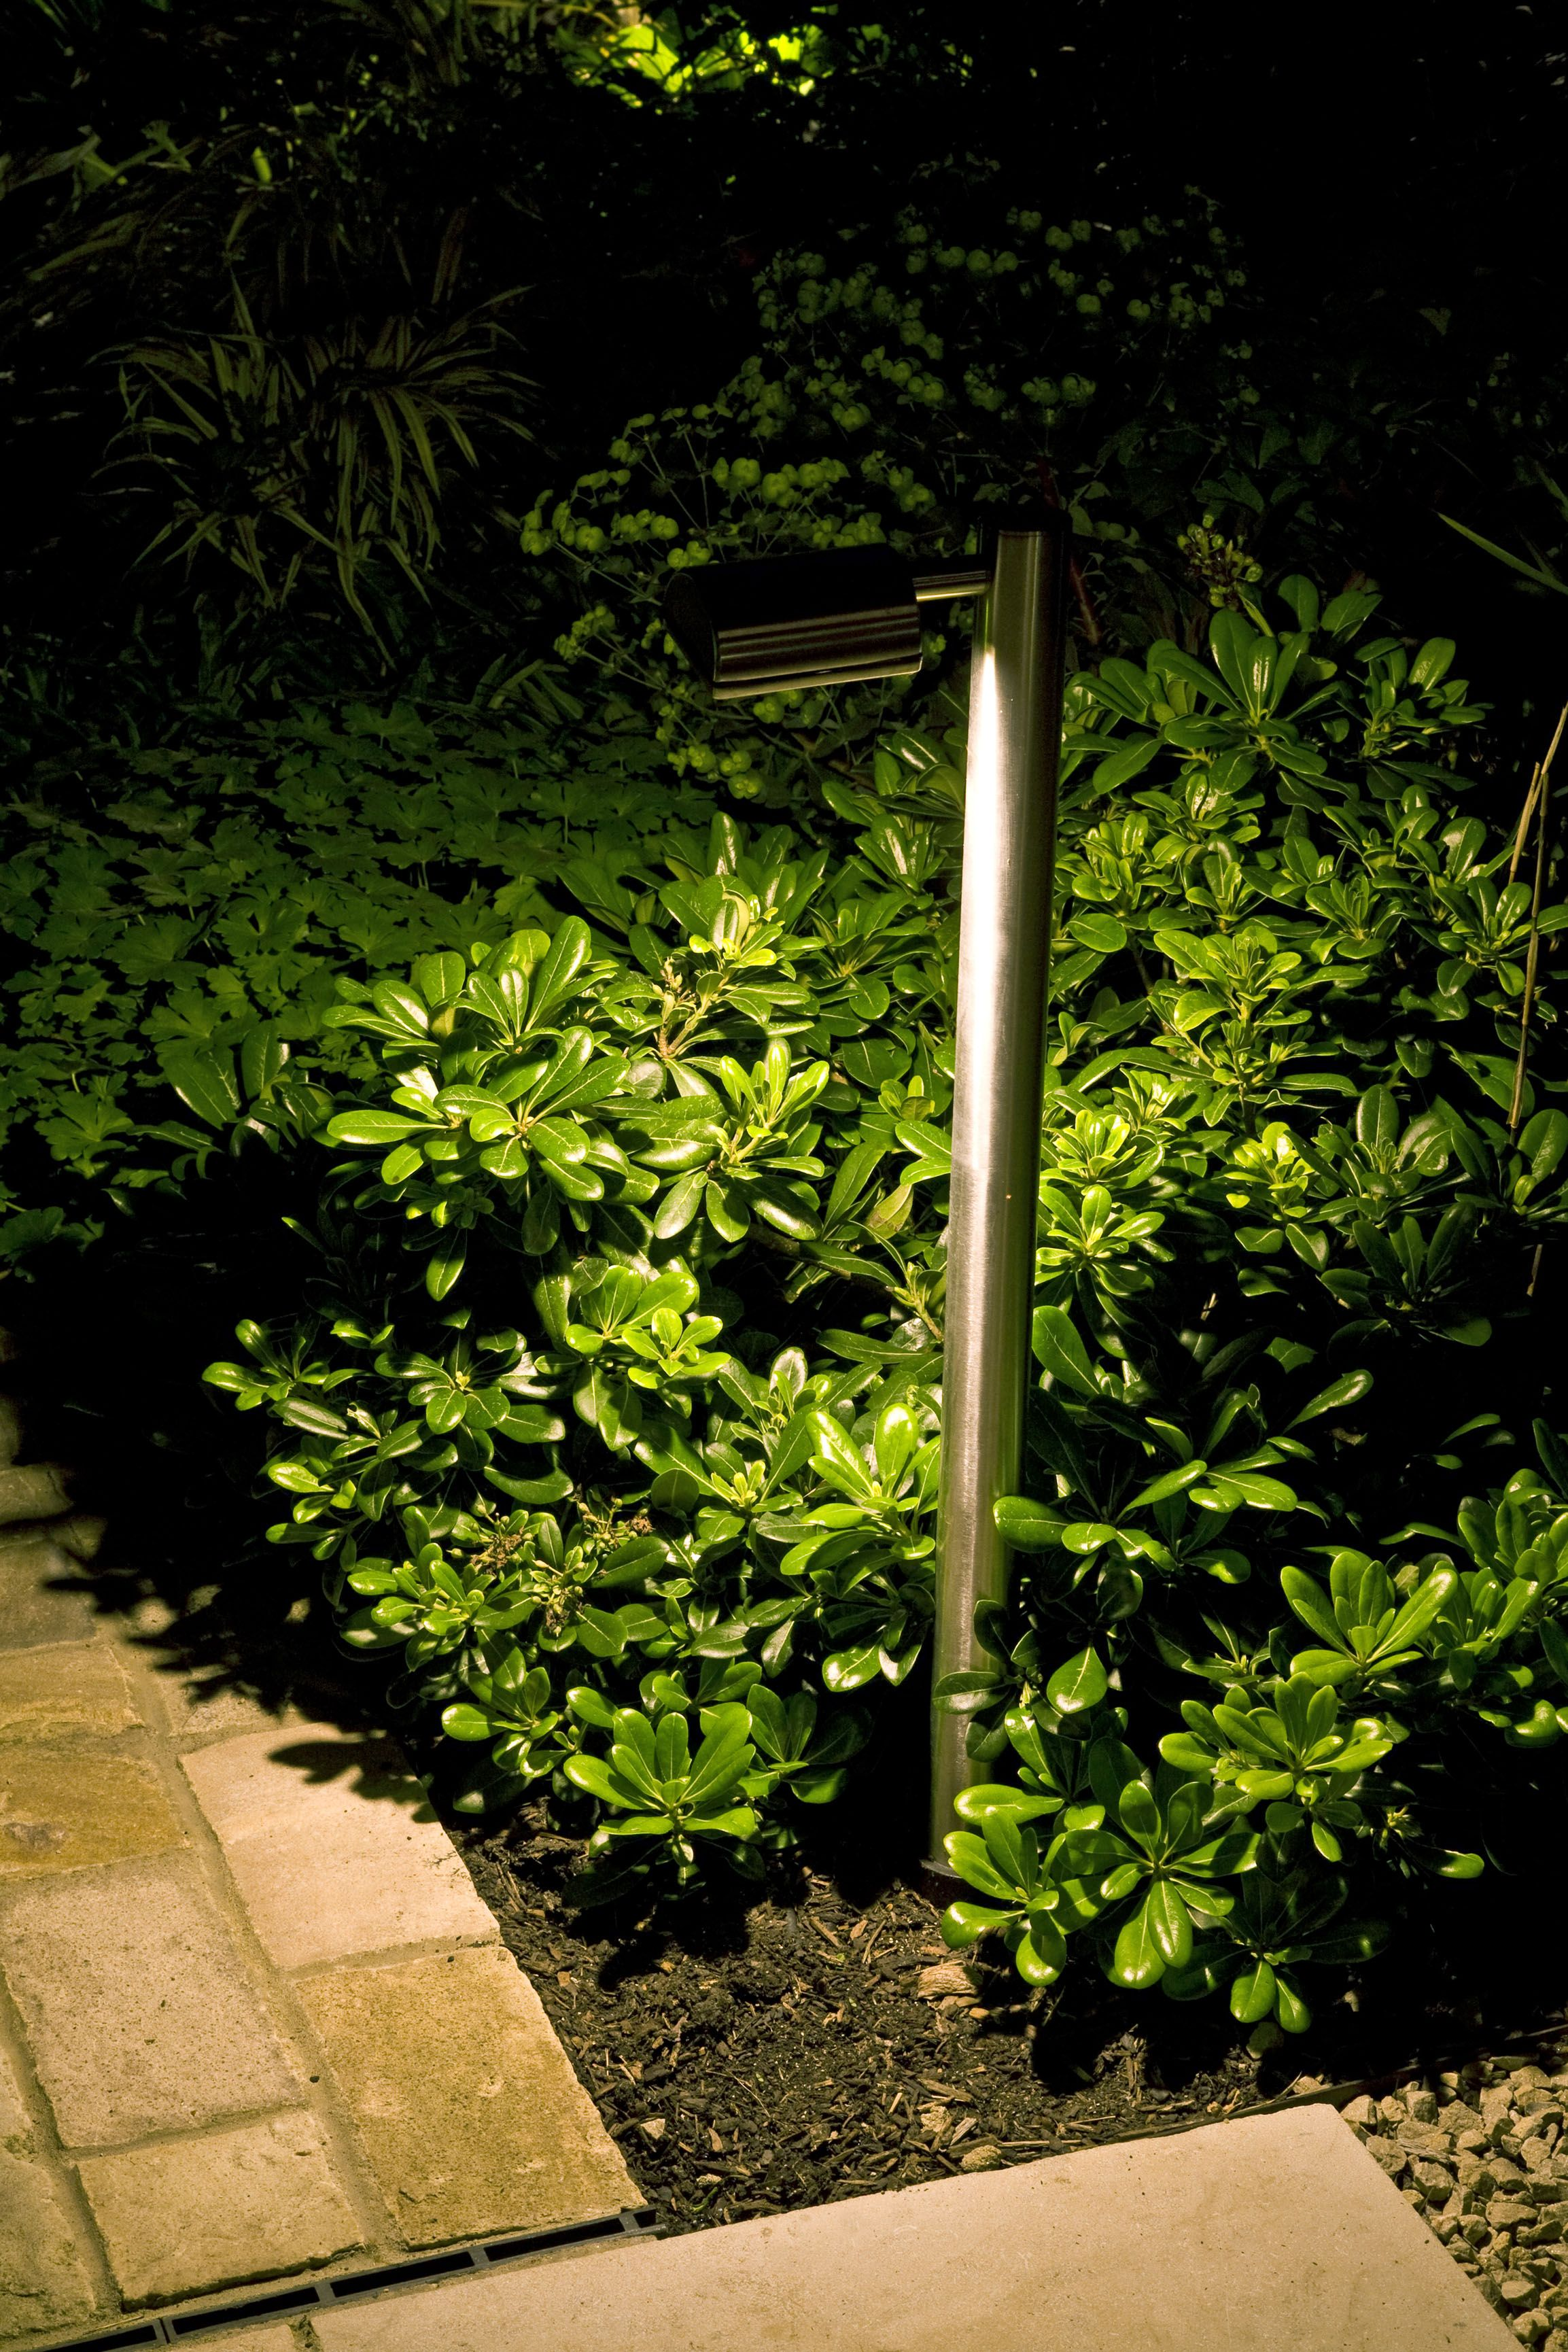 moonlight outdoor lighting. For This Path Moonlight Design Installed Hunza Border Lights In Stainless Steel With Warm White LEDs Outdoor Lighting